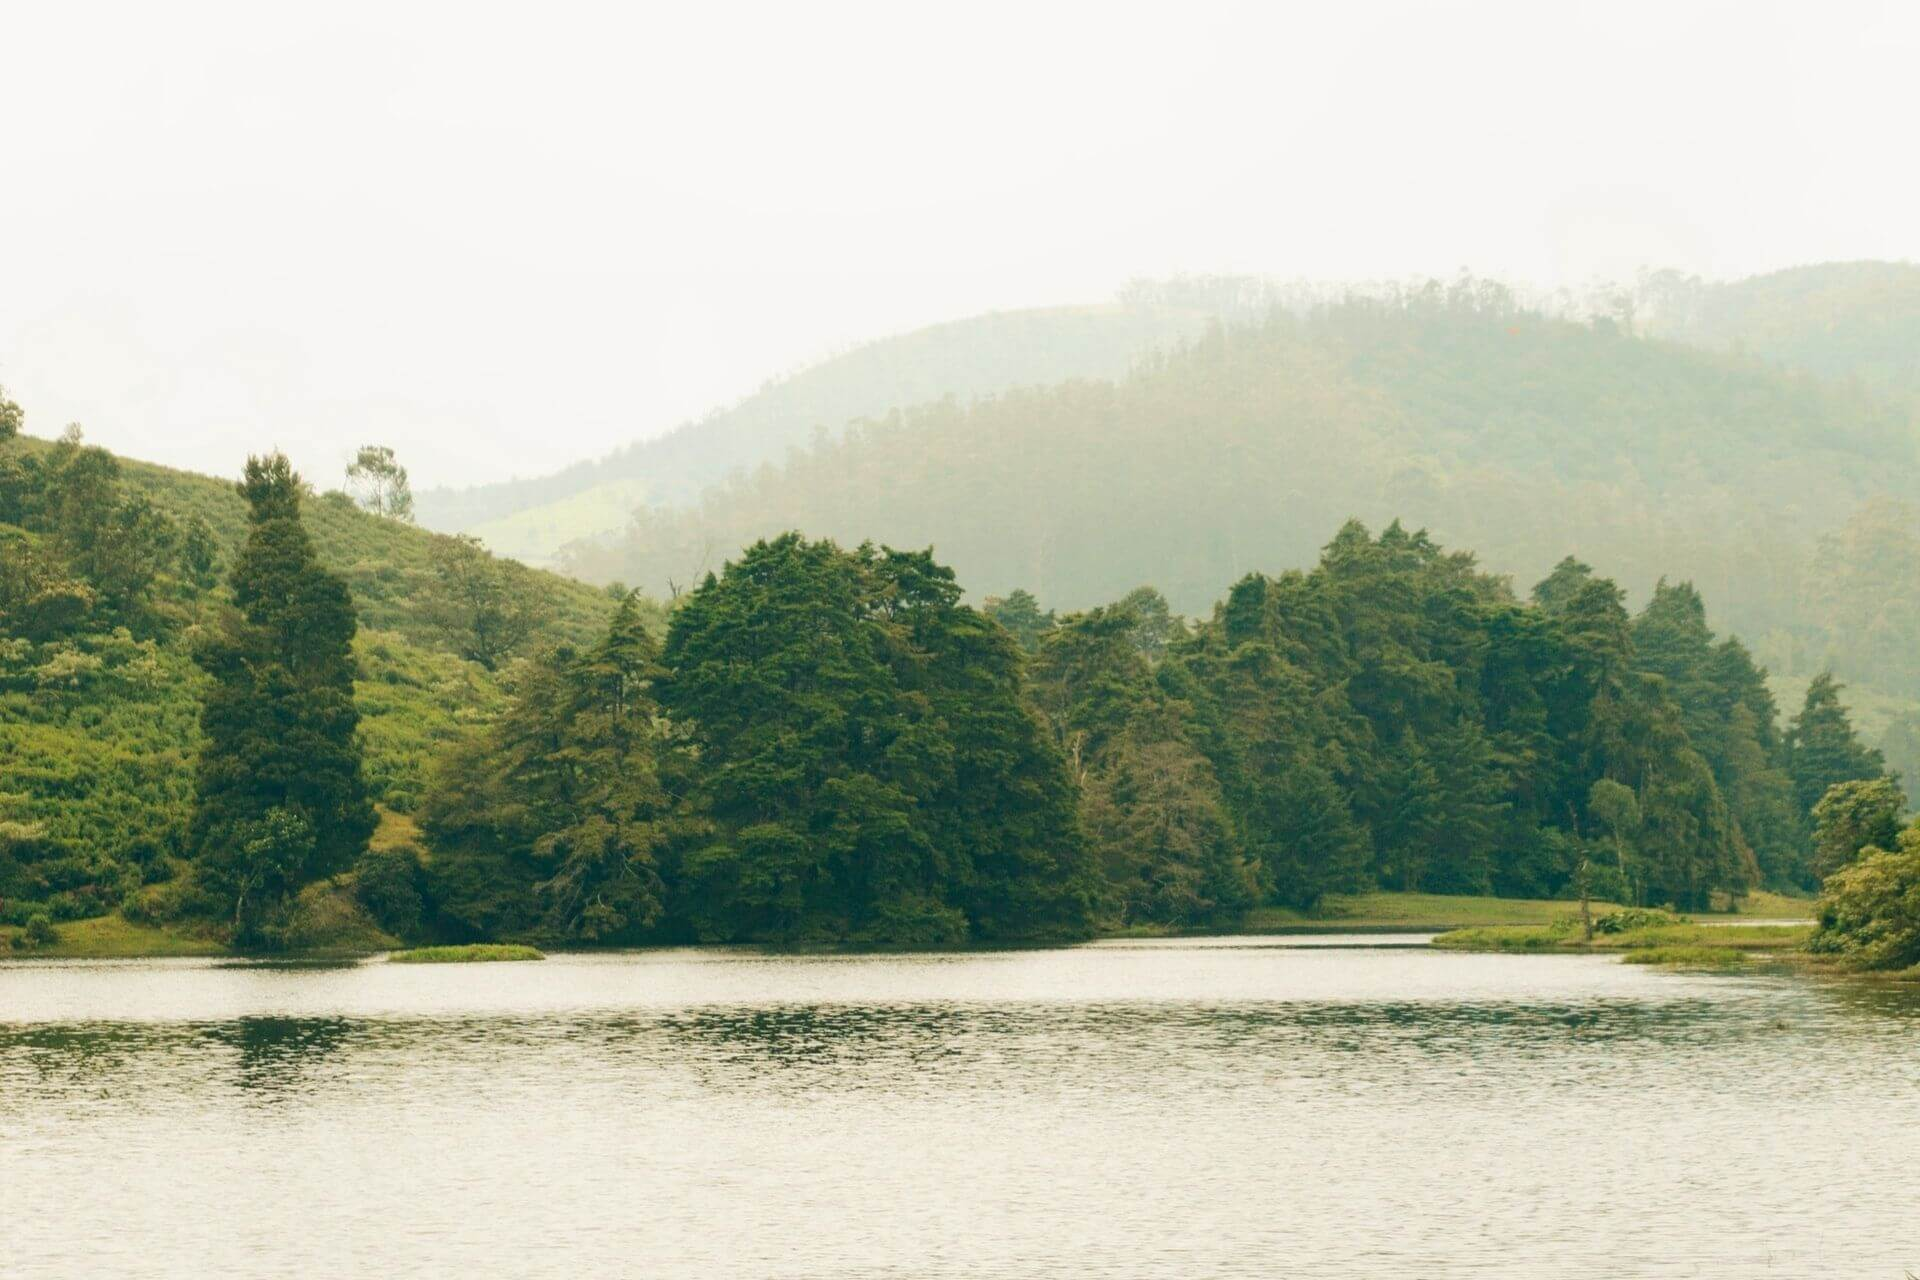 Ooty - Tamilnadu, Hill Stations in South India